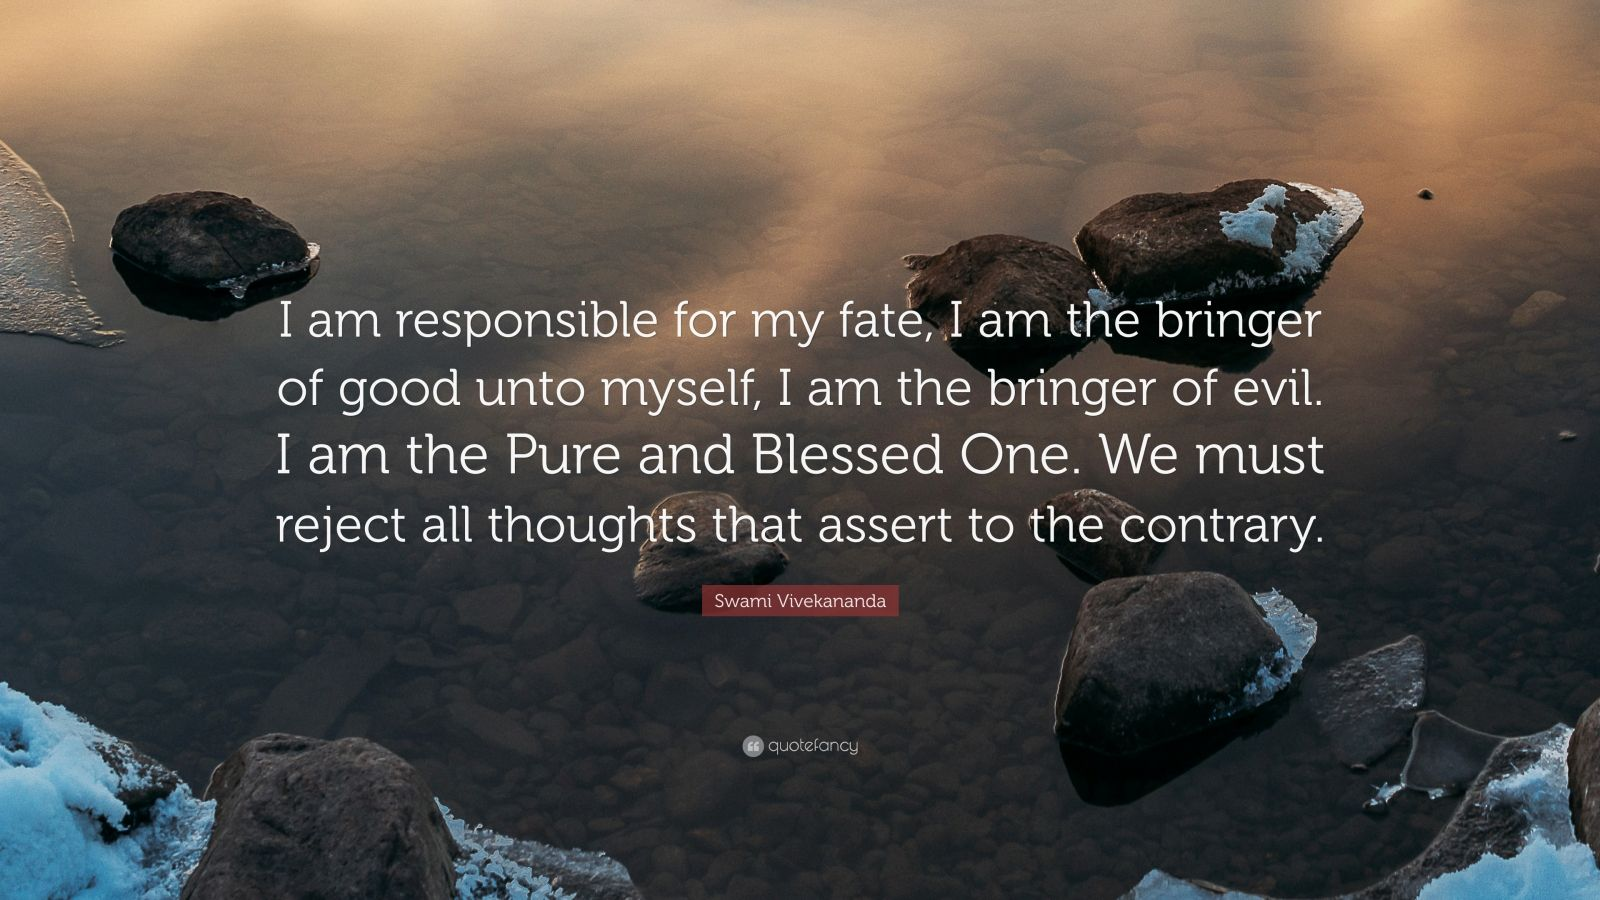 "Swami Vivekananda Quote: ""I am responsible for my fate, I am the bringer of good unto myself, I am the bringer of evil. I am the Pure and Blessed One. We must reject all thoughts that assert to the contrary."""